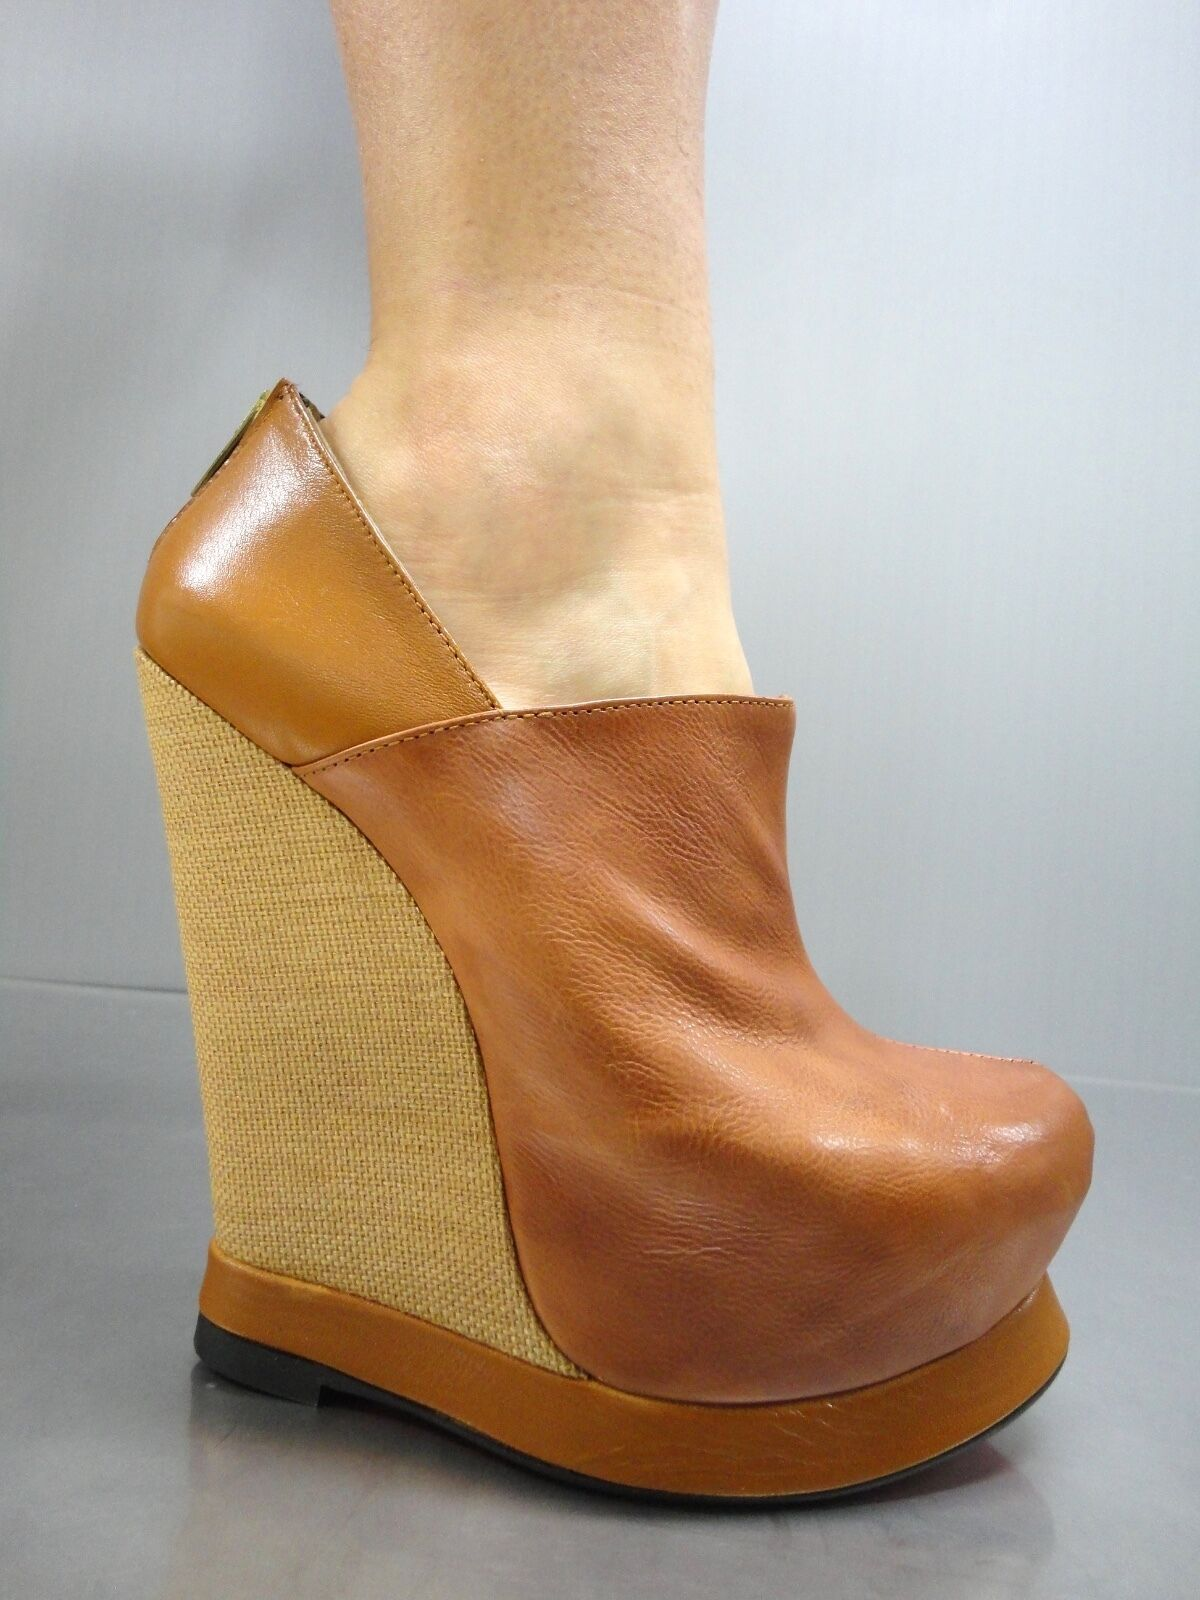 Grandes zapatos con descuento MORI ITALY WEDGES NEW HEELS ANKLE BOOTS STIEFEL STIVALI LEATHER BROWN MARRONE 43